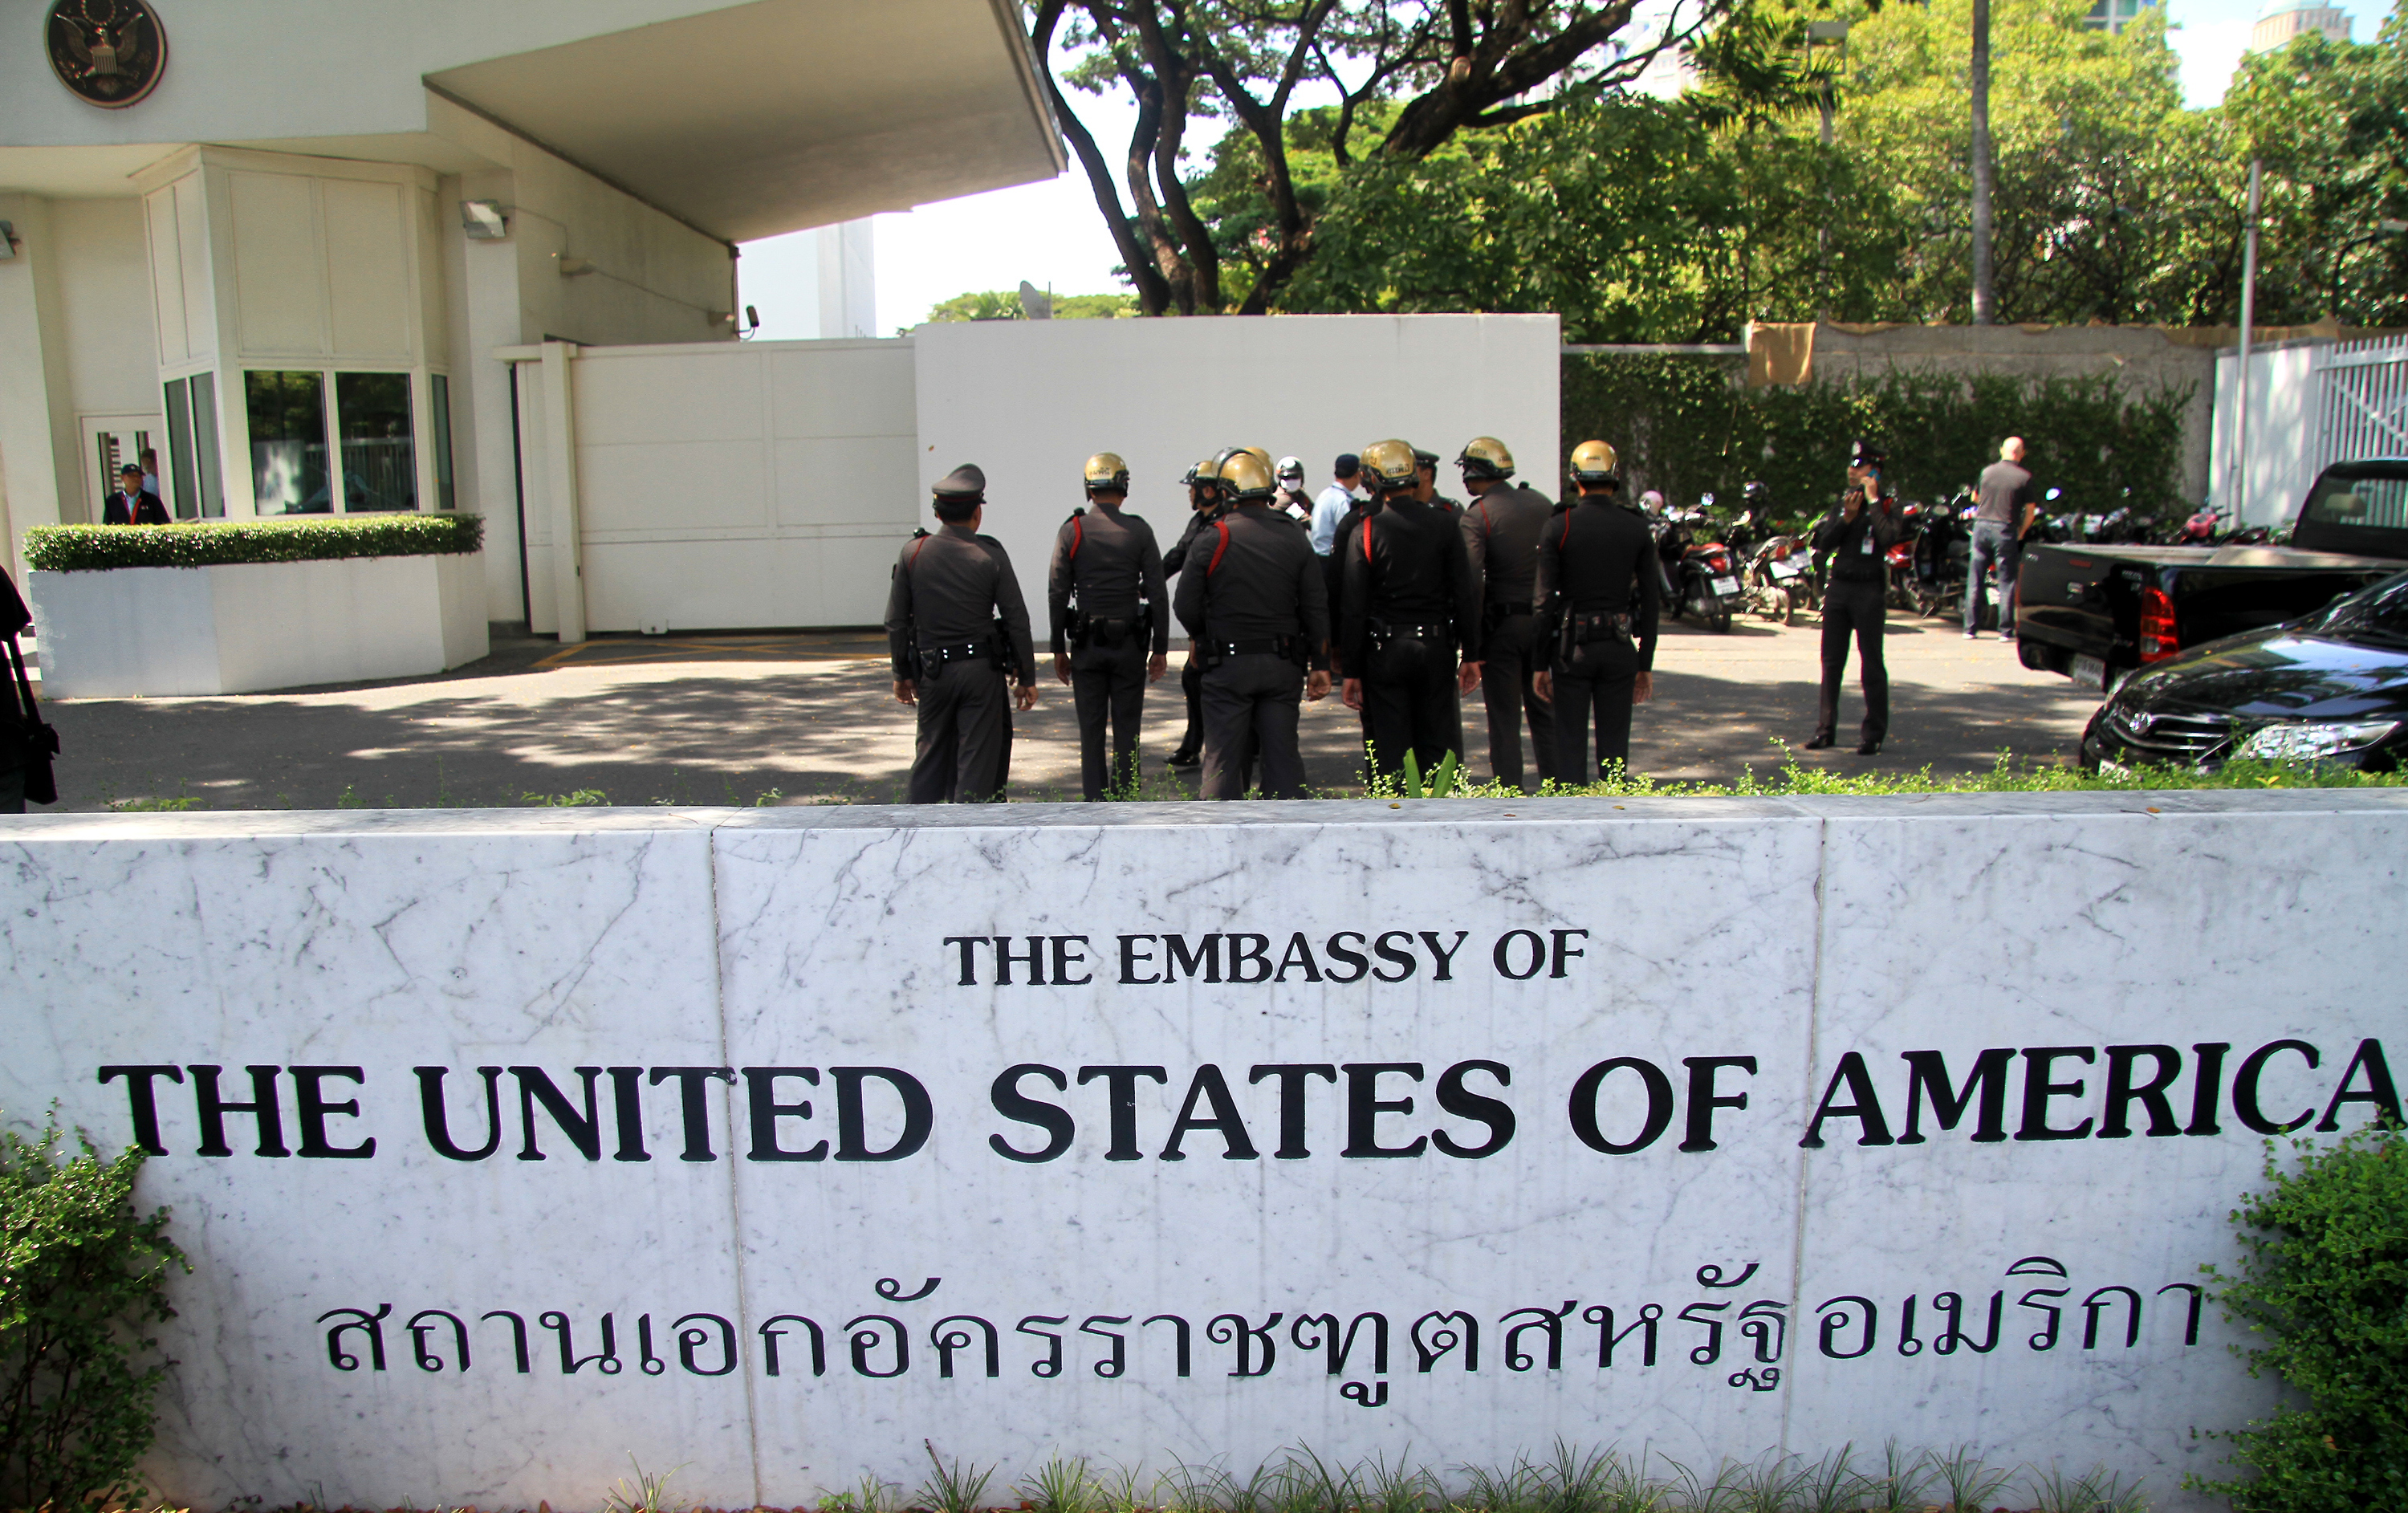 Policemen huddled on the grounds of the grounds of the U.S. Embassy in Bangkok on Nov. 27, 2015